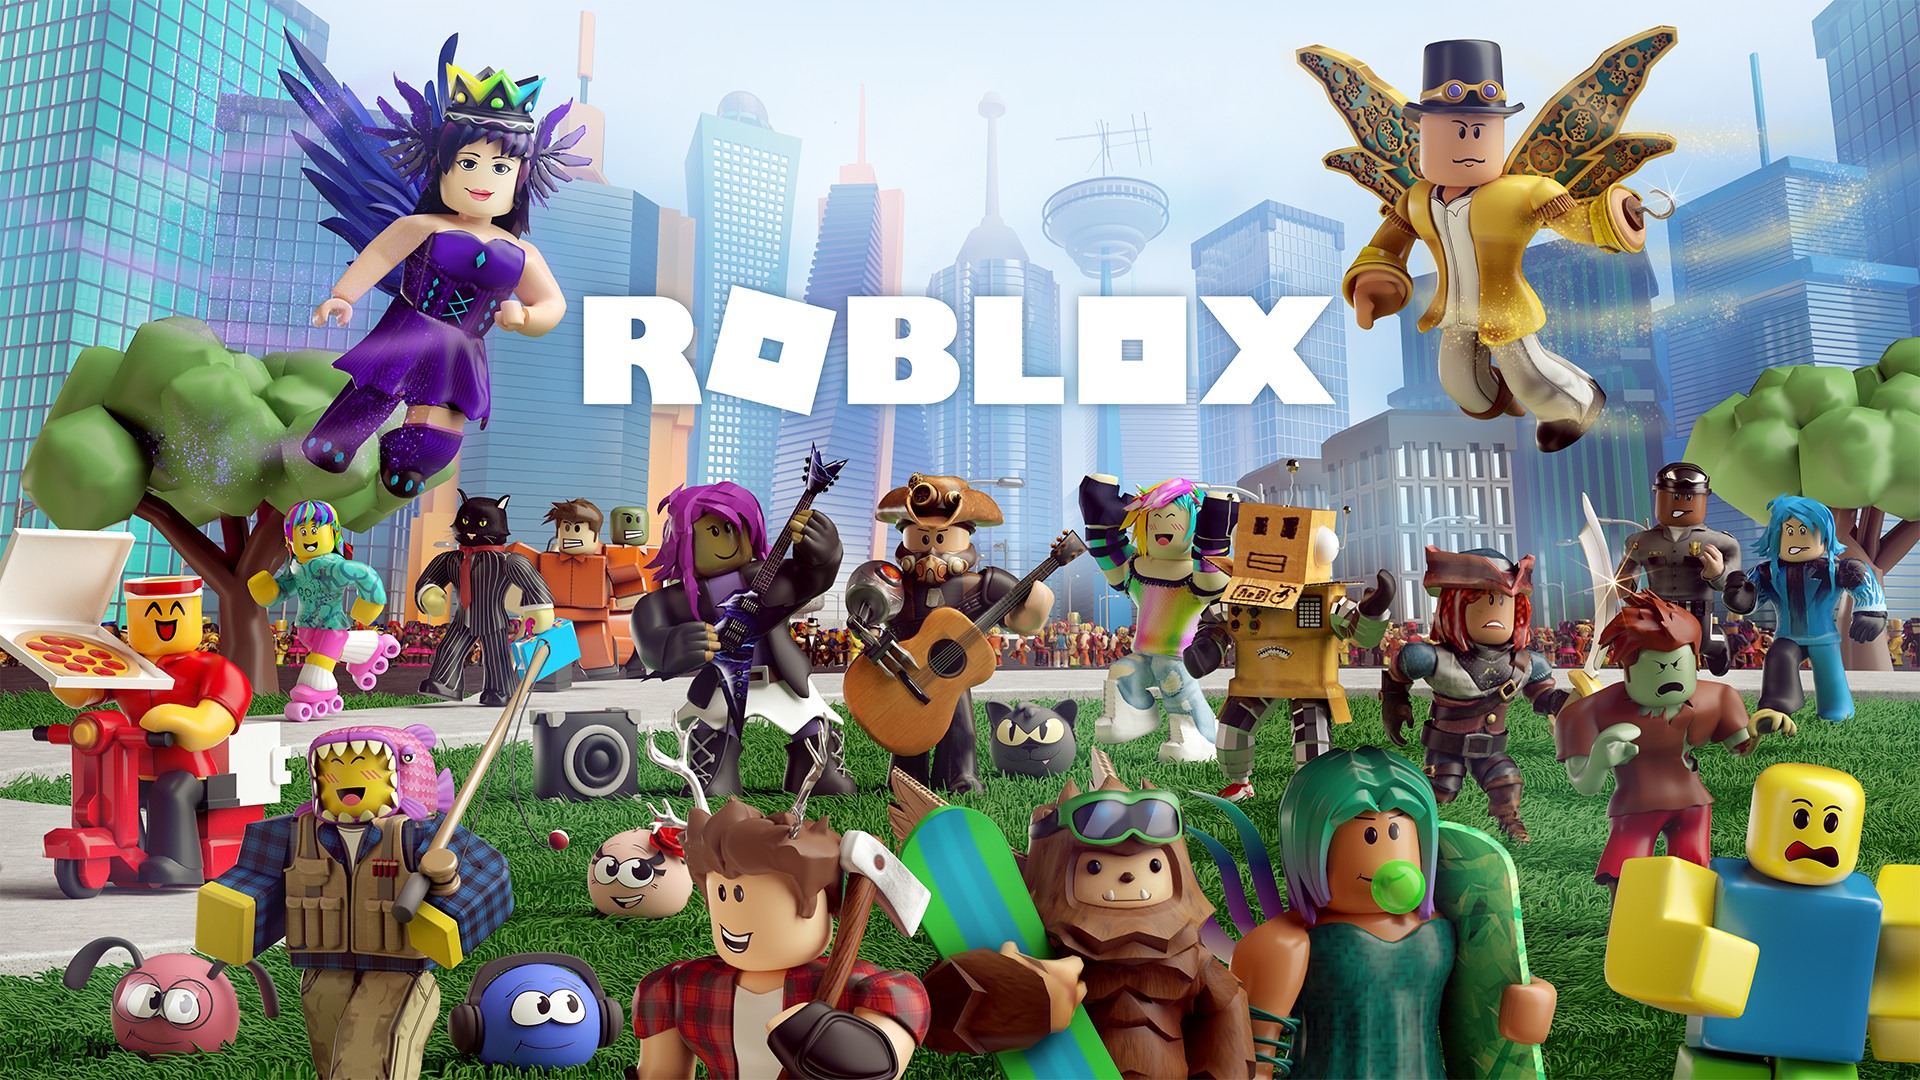 Online Kids Game Roblox Shows Female Character Being Violently